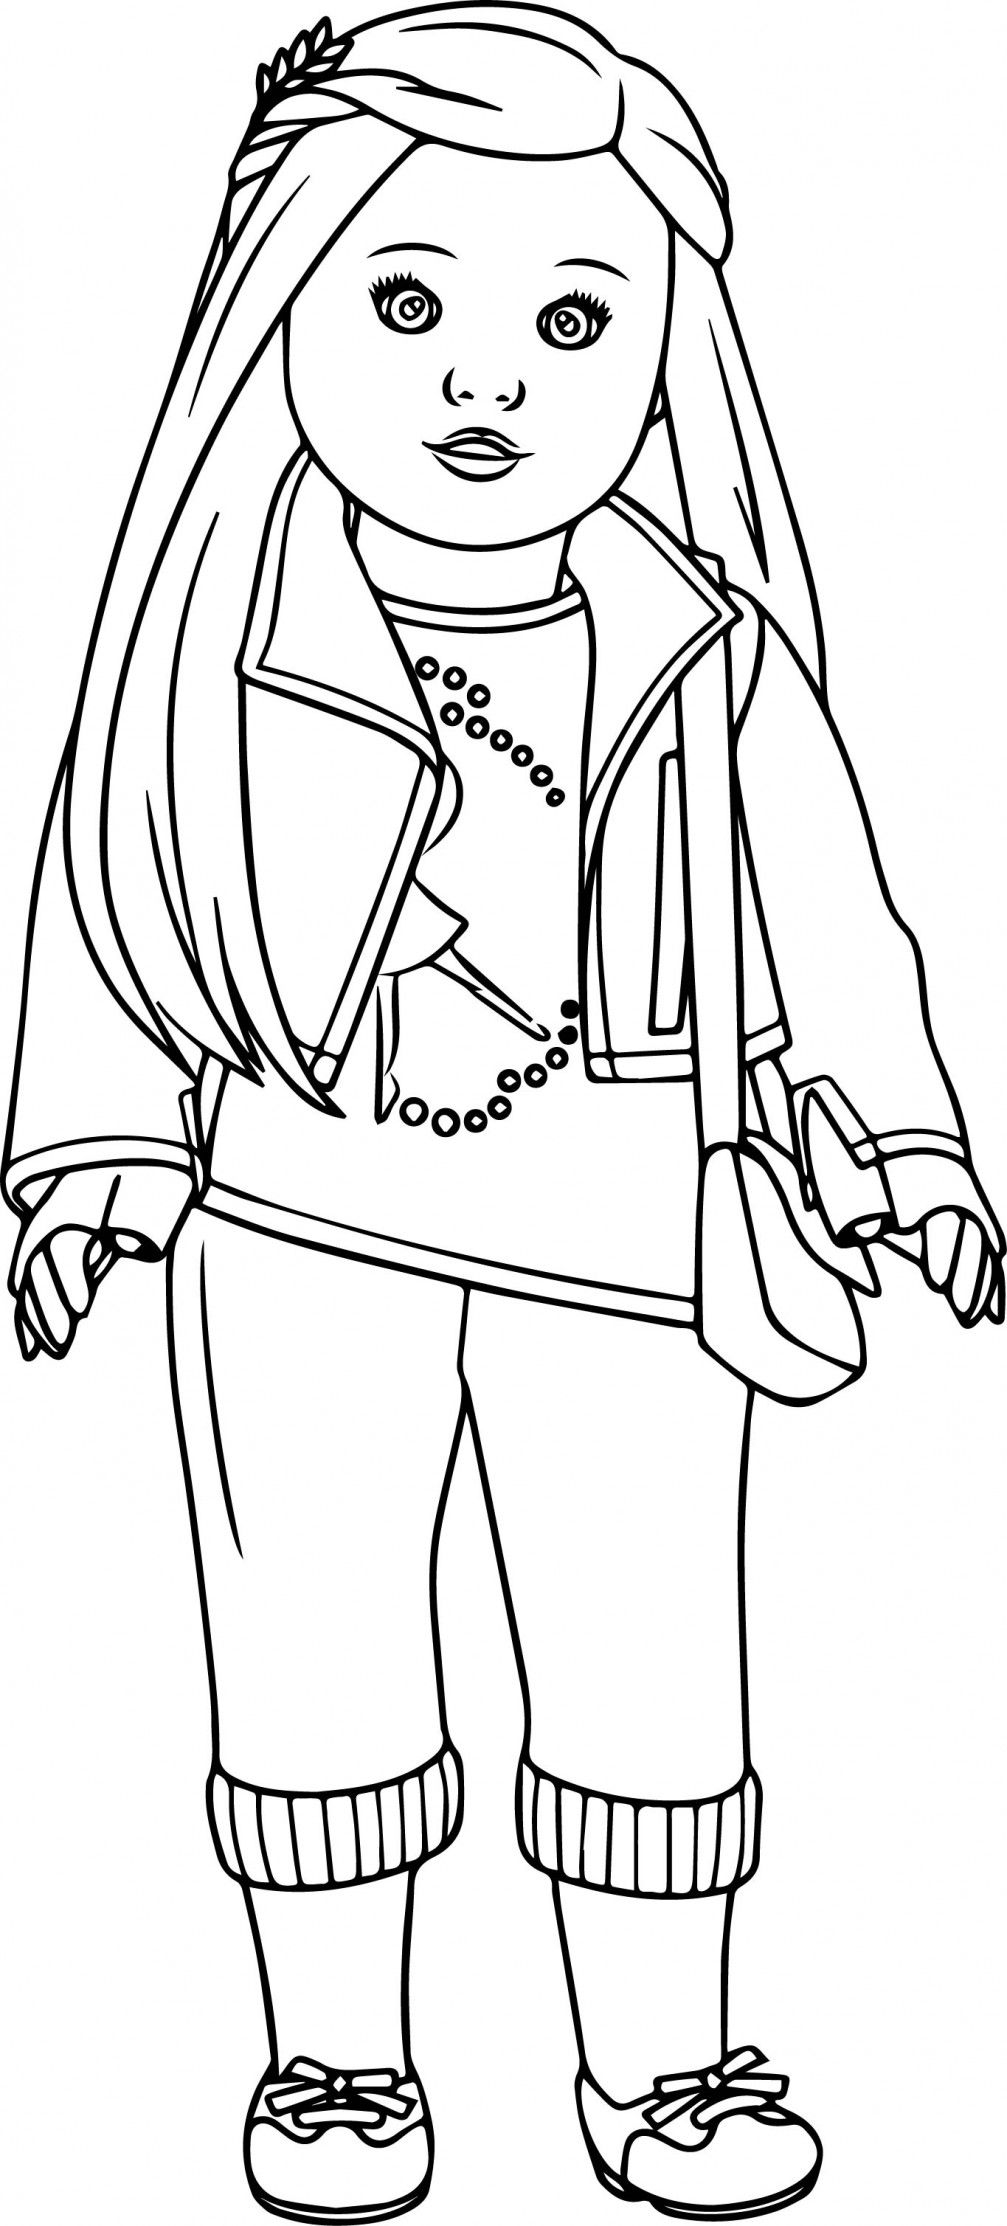 free coloring pages girls free printable coloring pages for girls free pages girls coloring